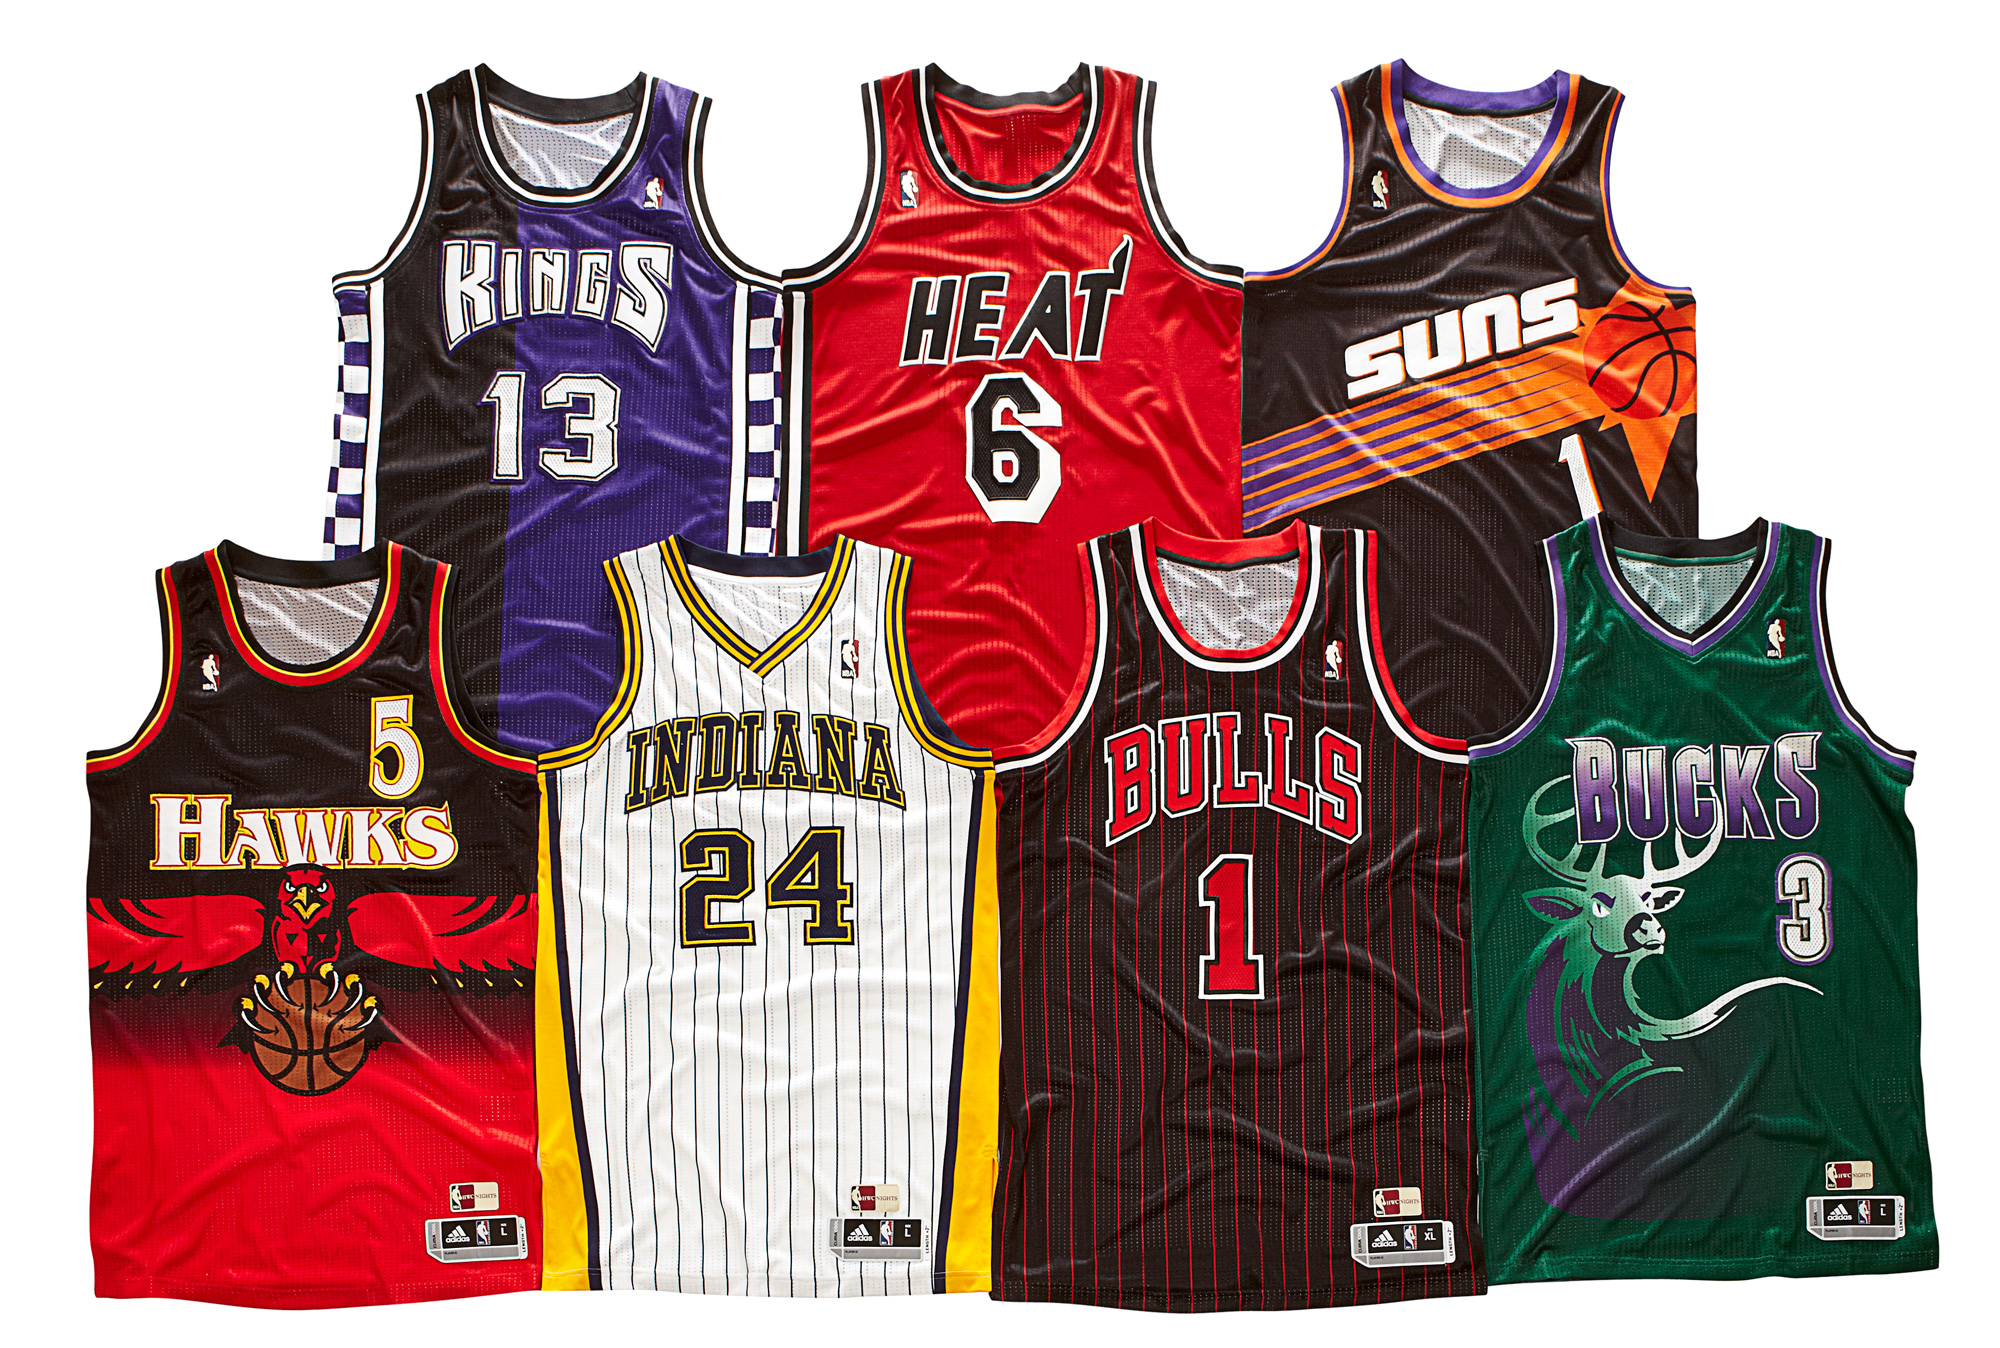 adidas Rolls Out '90s NBA Uniforms for NBA Hardwood Classics Nights